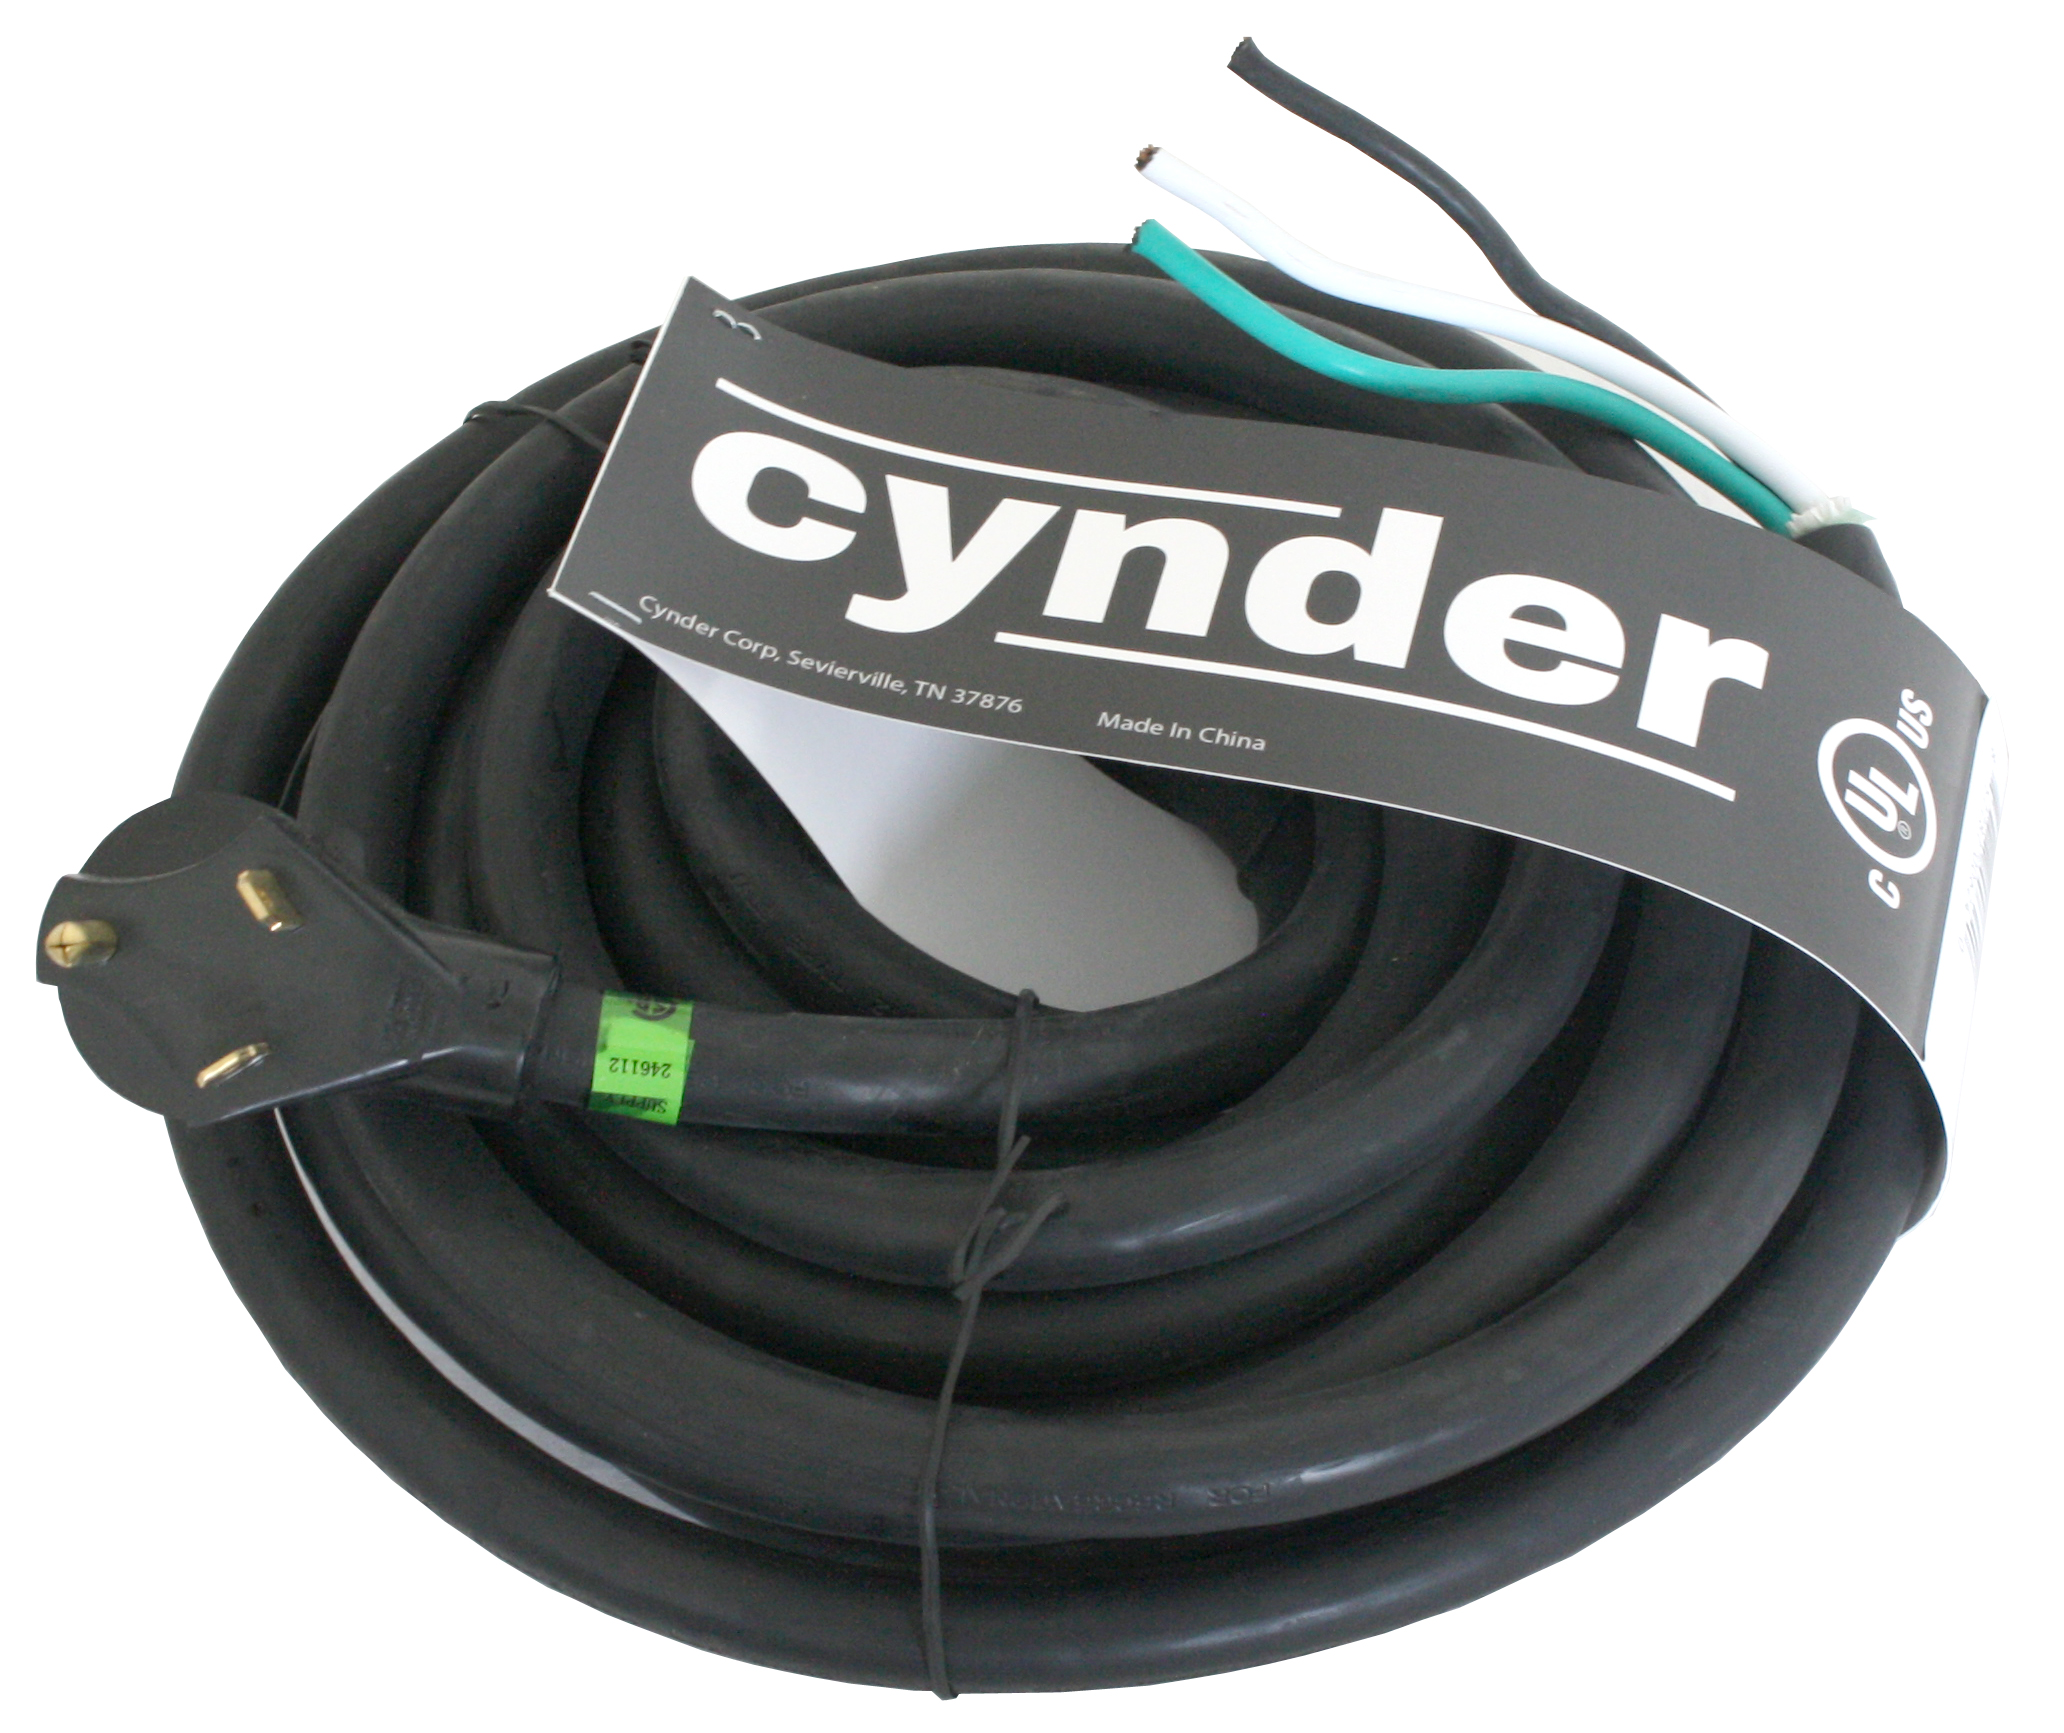 cynder rv replacement power cord 30 amps 25 39 foot male end only. Black Bedroom Furniture Sets. Home Design Ideas